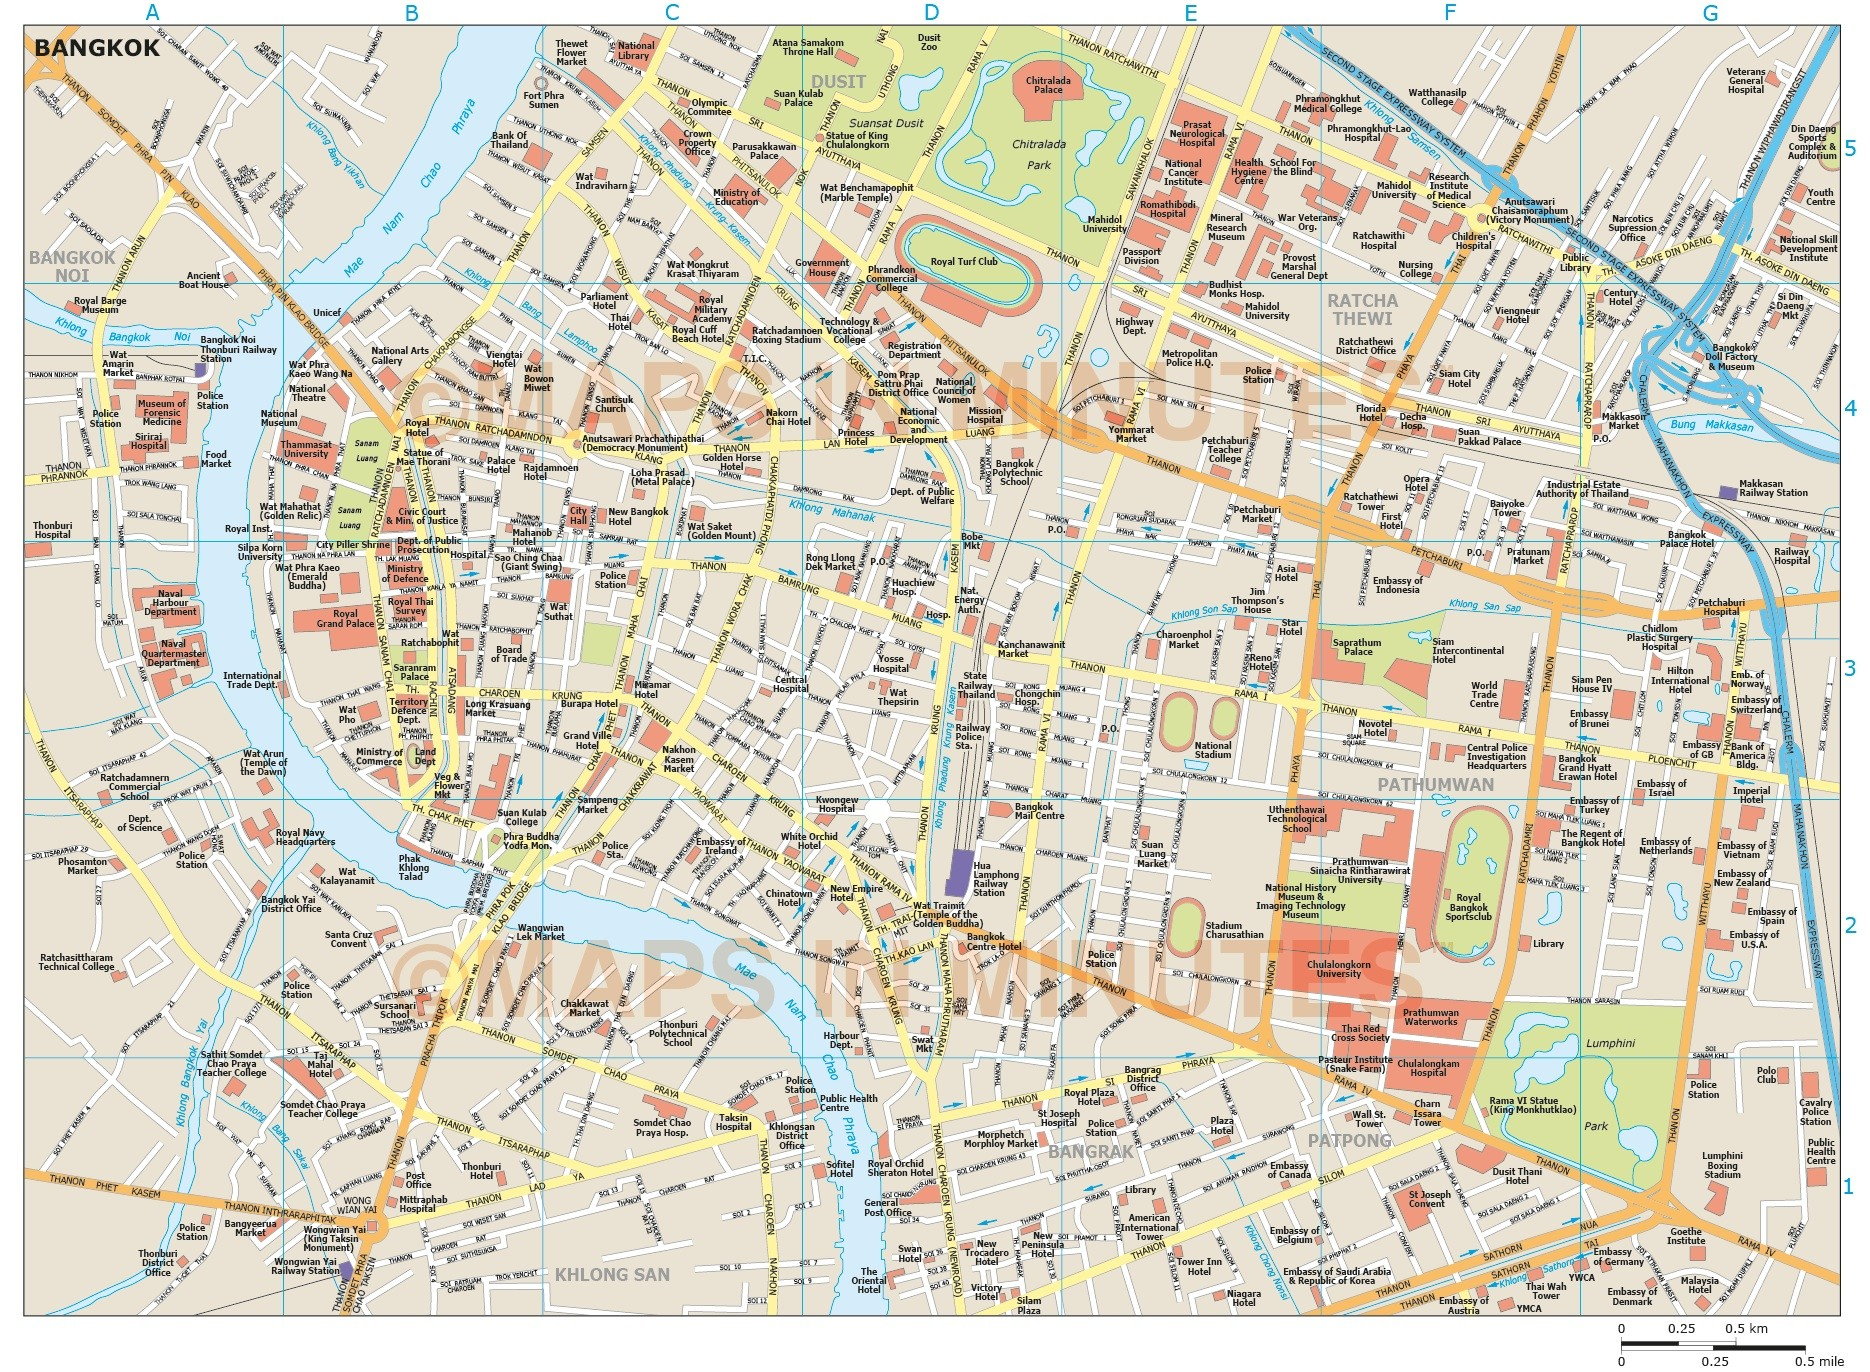 Bangkok city map bangkok city map in illustrator cs or pdf vector format gumiabroncs Image collections